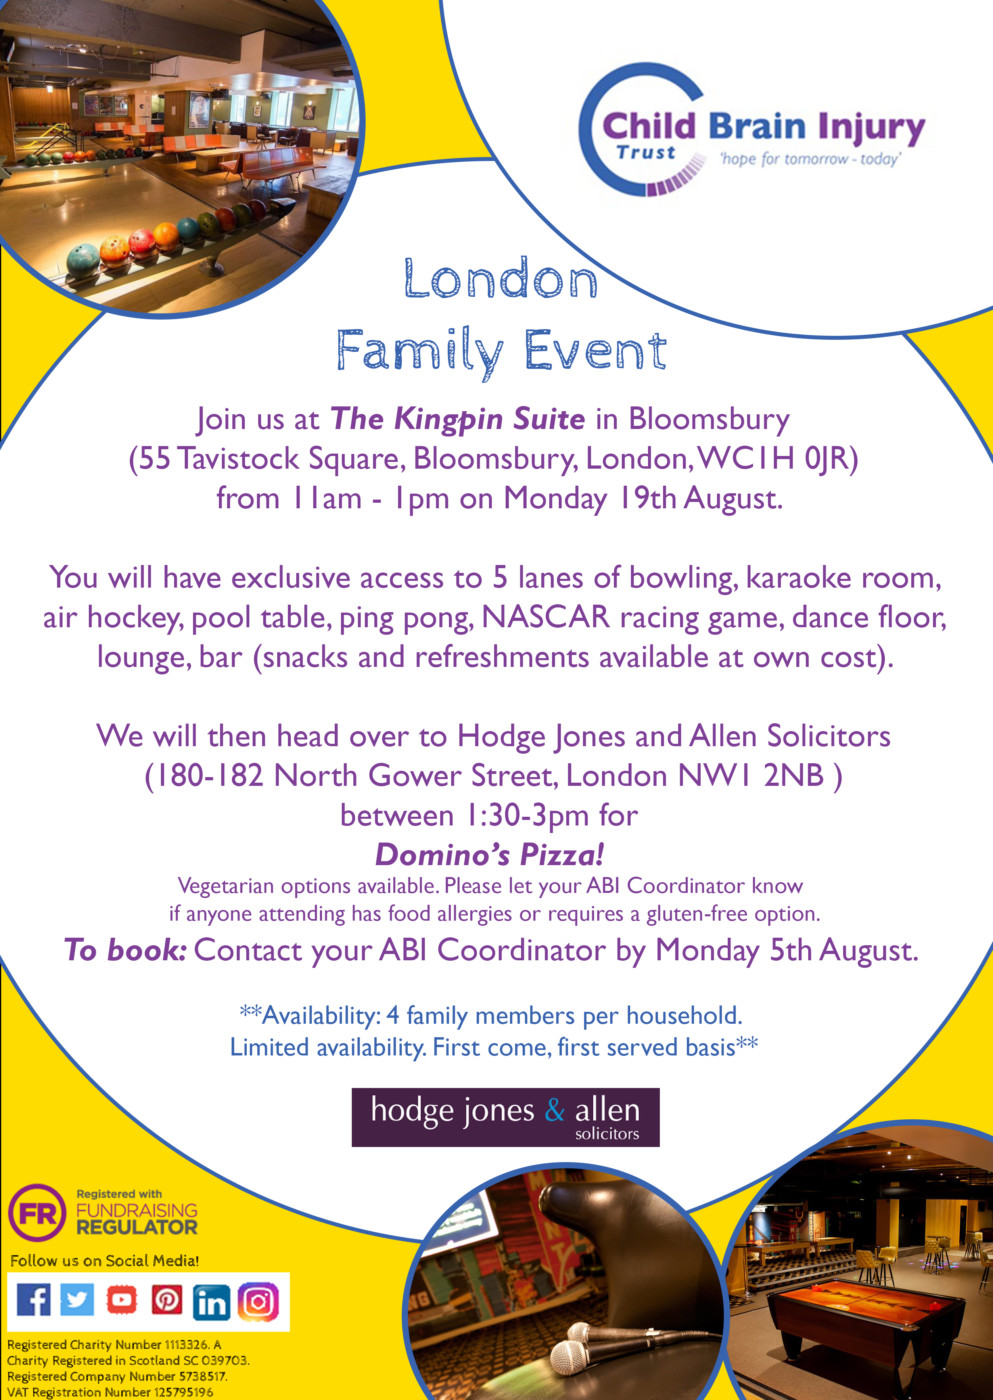 London Family Event - summer 2019